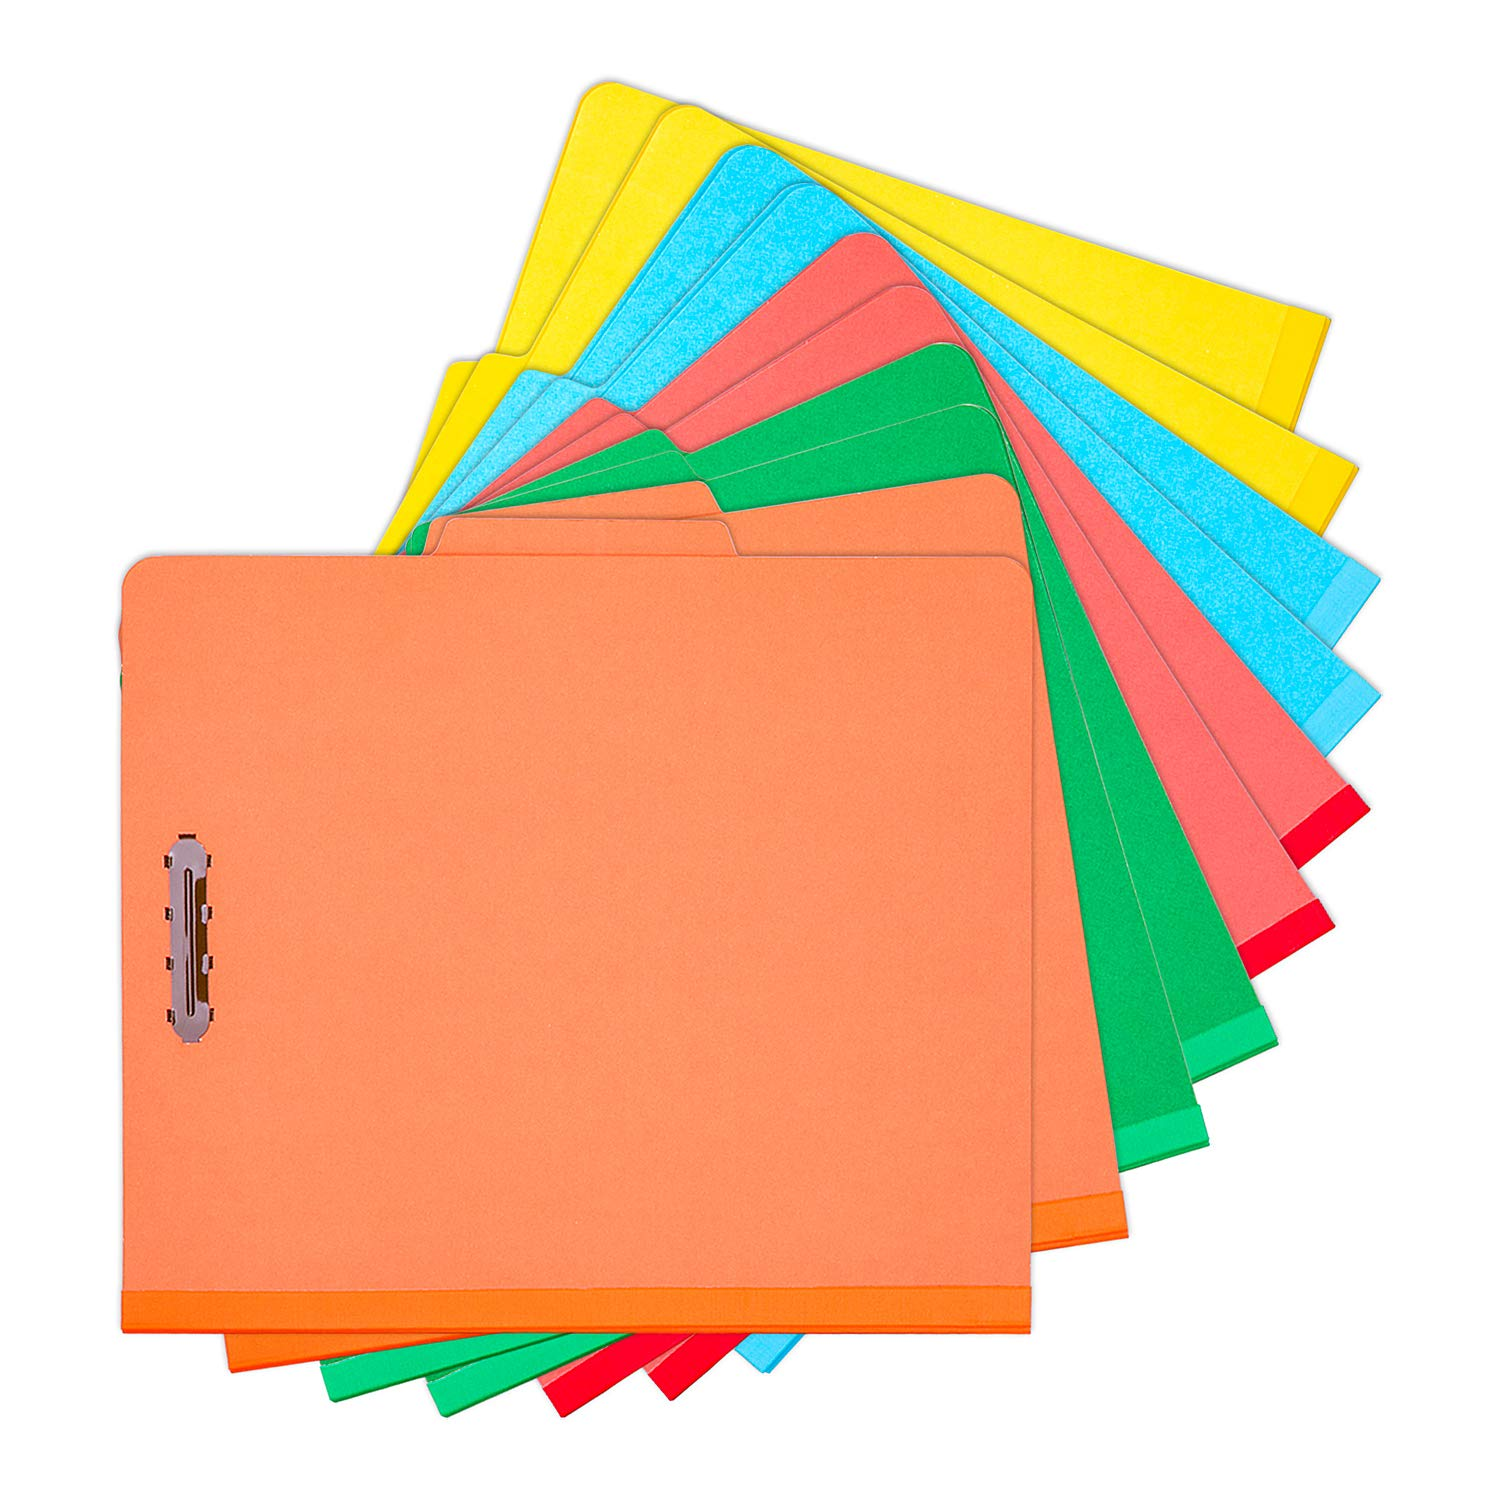 100% Recycled End Tab Pressboard Classification File Folders Large Size 2.5'' Expansion Within Safe-Shield Fasteners 2 Dividers (5 Colors) 10 Per Box by WH PFD